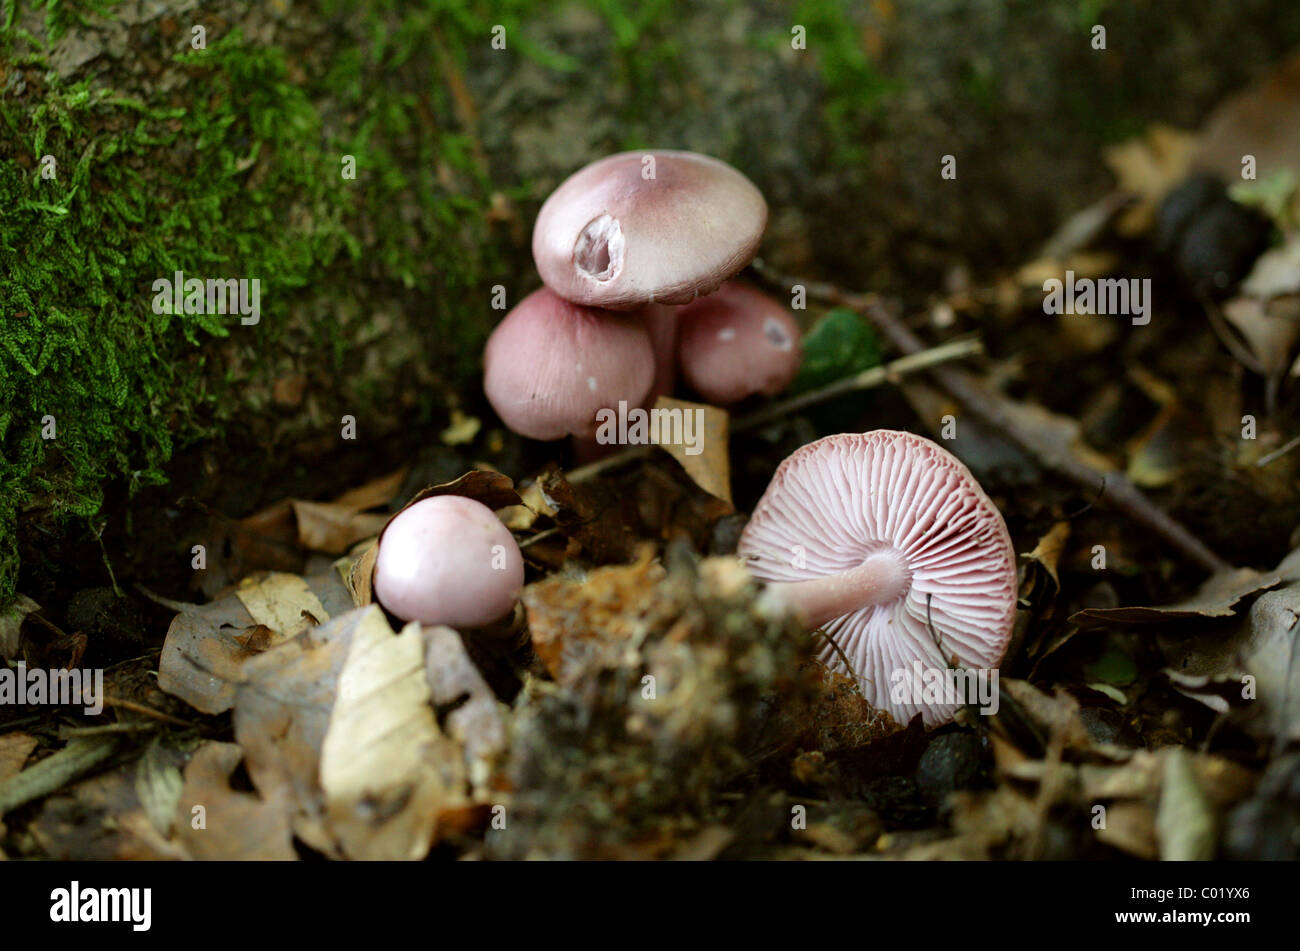 Earth Inocybe or Lilac Fibrecap, Inocybe geophylla var lilacena, Cortinariaceae. Growing in Beech Leaf Litter, August, - Stock Image